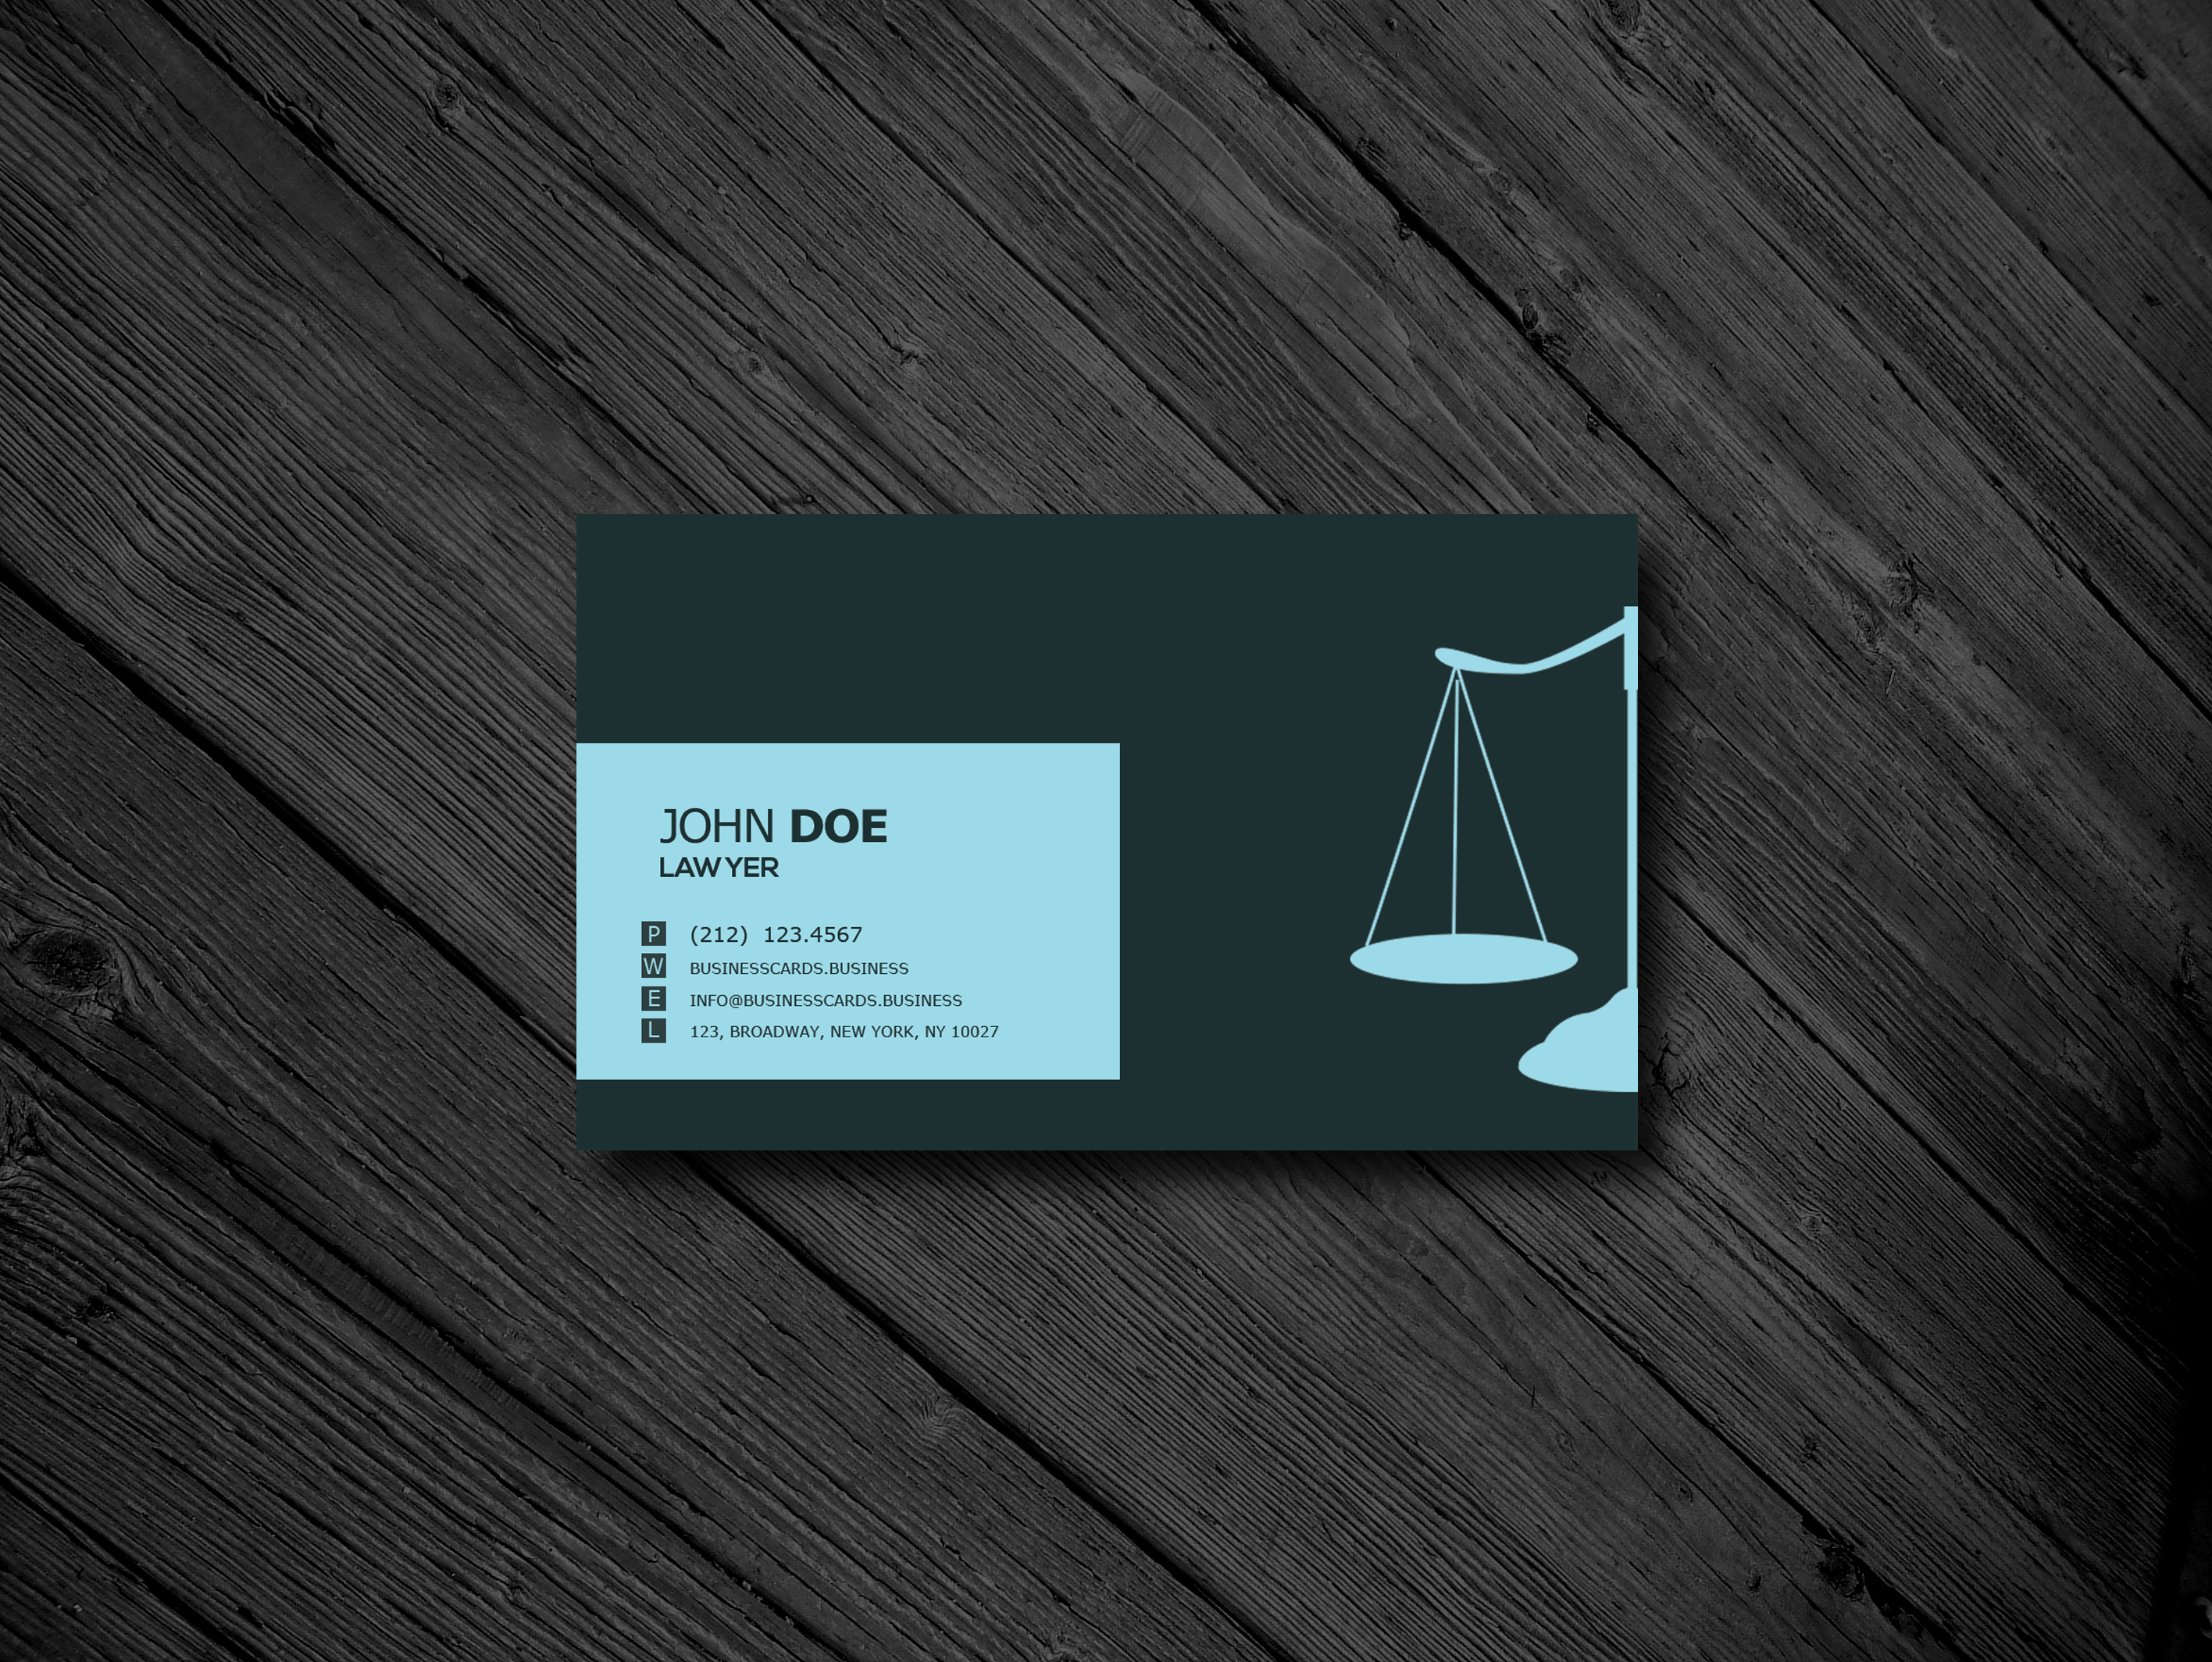 Free business card templates business cards templates free lawyer business card psd template accmission Gallery